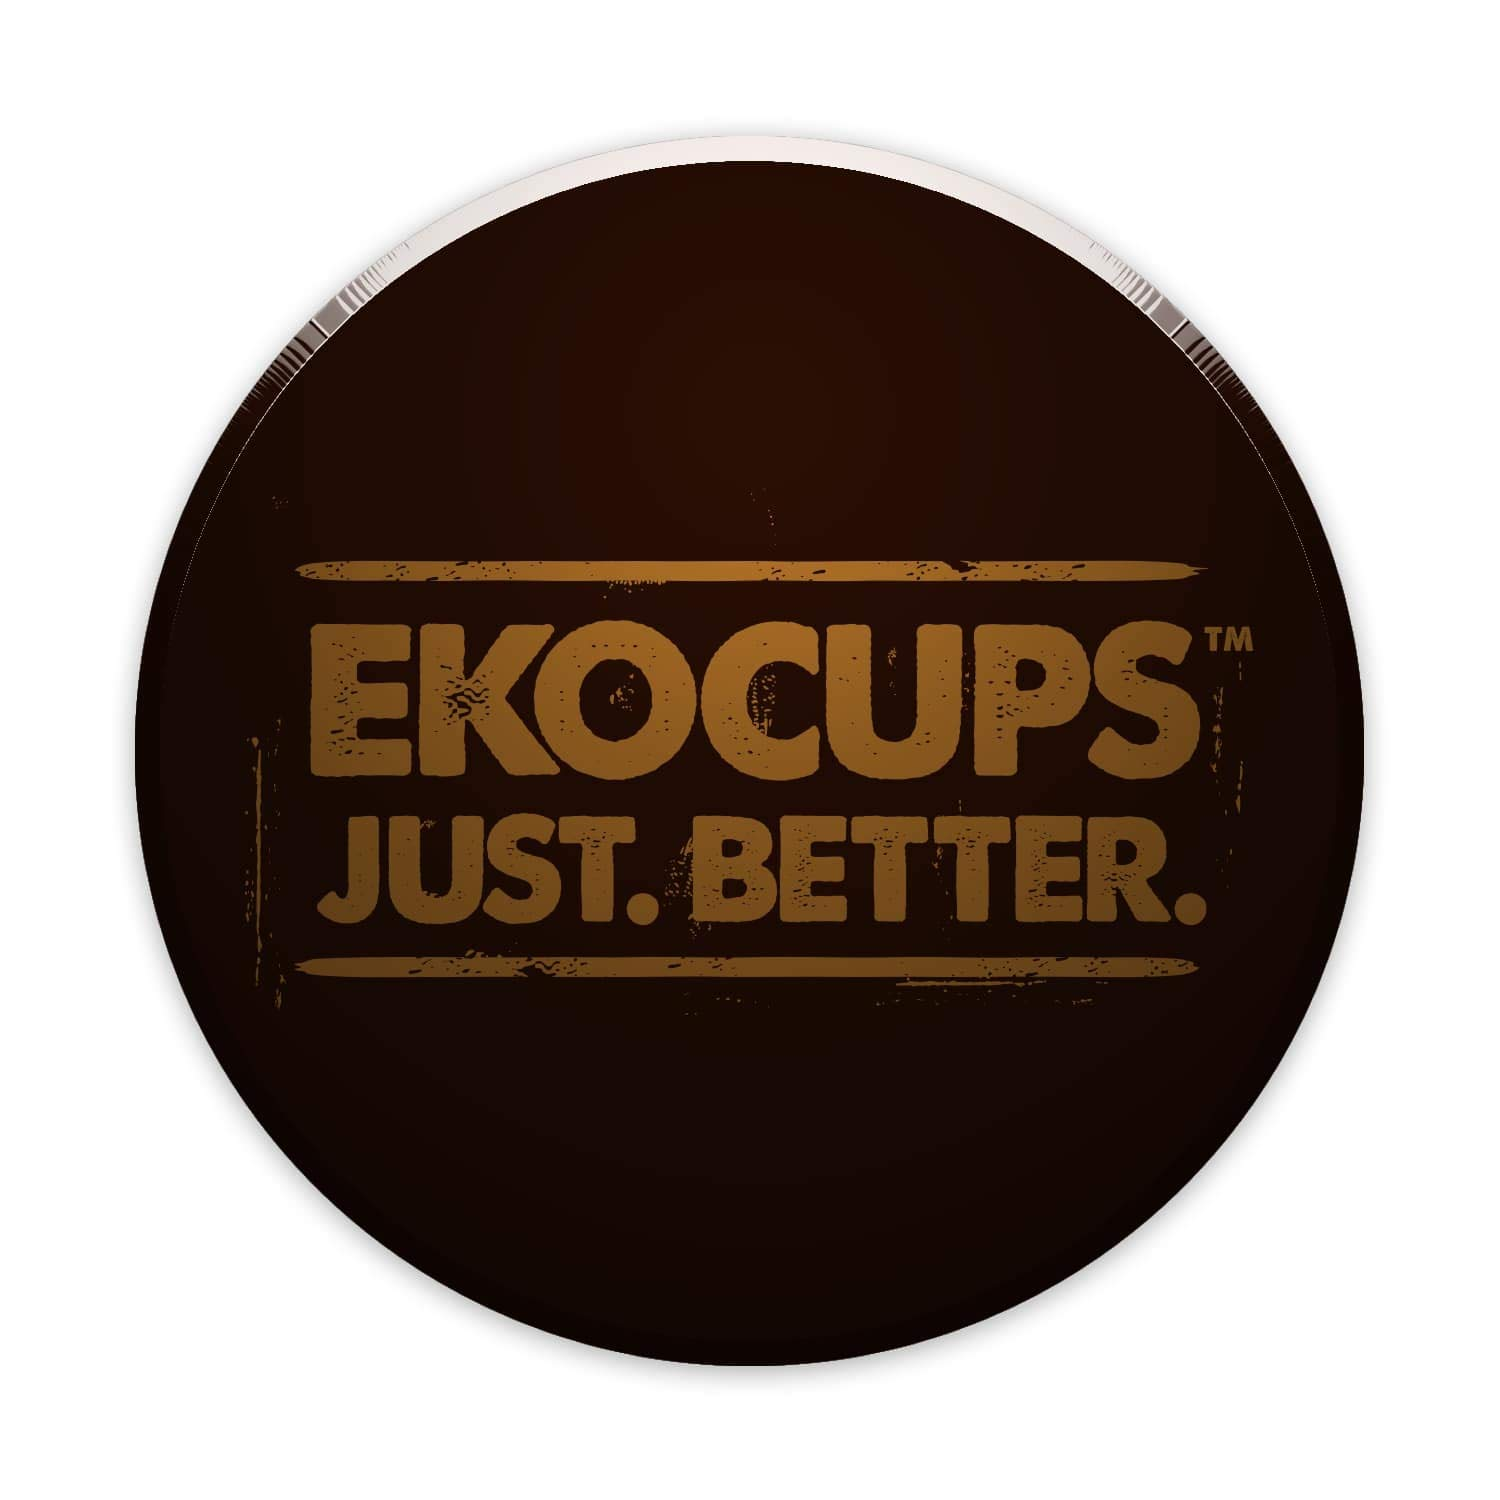 EKOCUPS Artisan Organic Dark Coffee, Dark Roast, in Recyclable Single Serve Cups for Keurig K-cup Brewers, 40 count by EKOCUPS